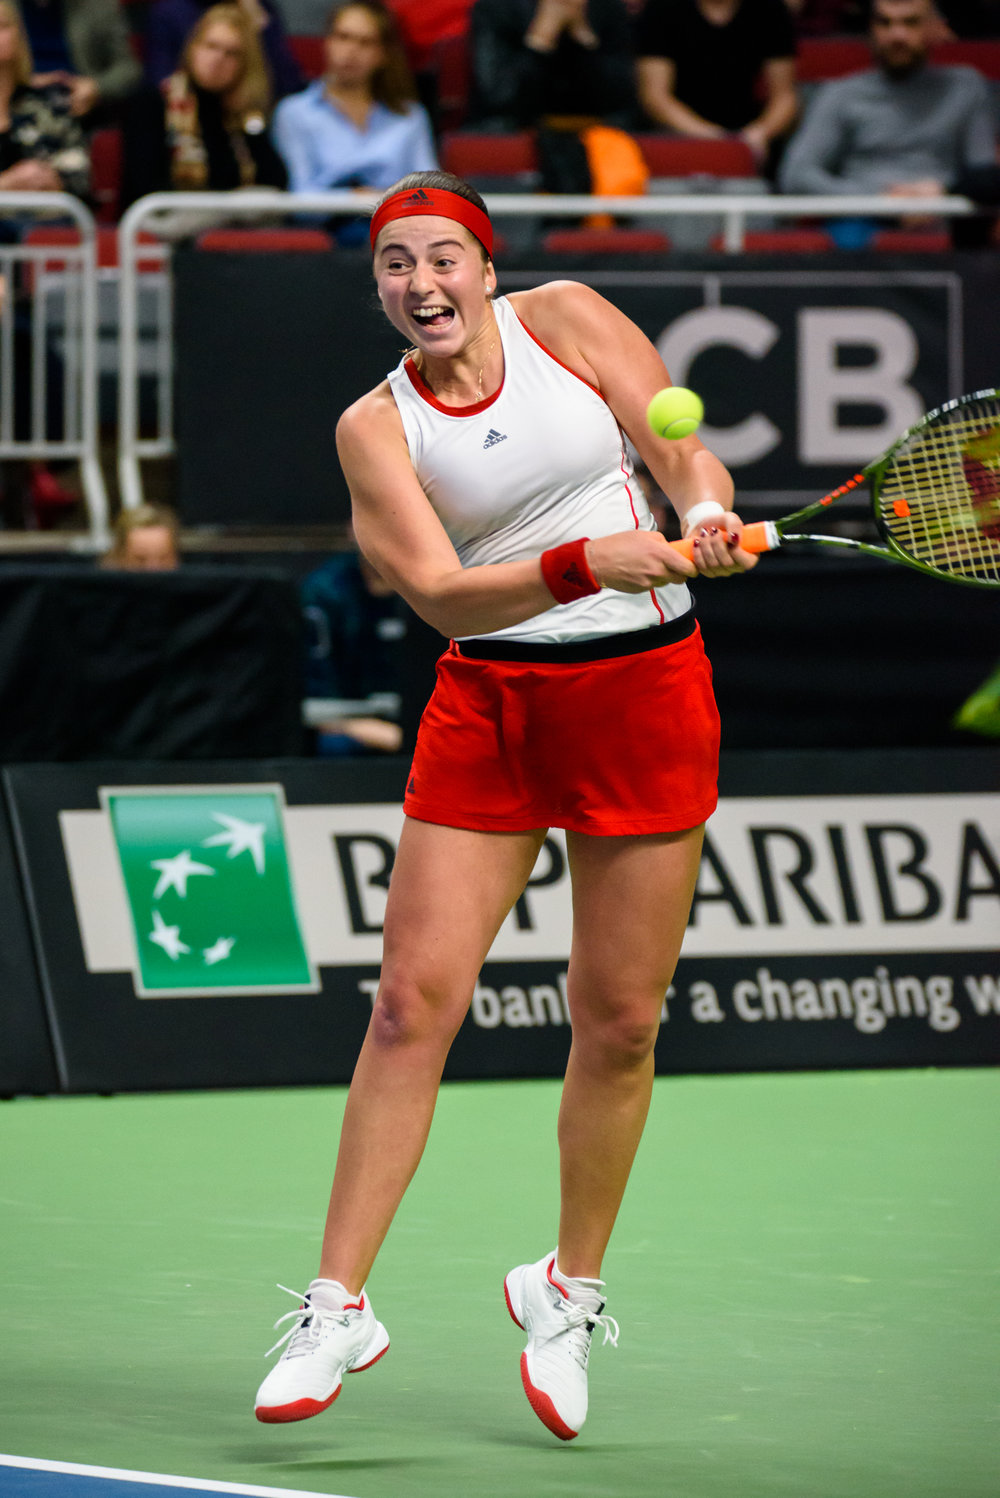 09.02.2019. RIGA, LATVIA.  FEDCUP BNP Paribas, The World Cup of Tennis World Group II First Round game between team Latvia and team Slovakia at Arena Riga.